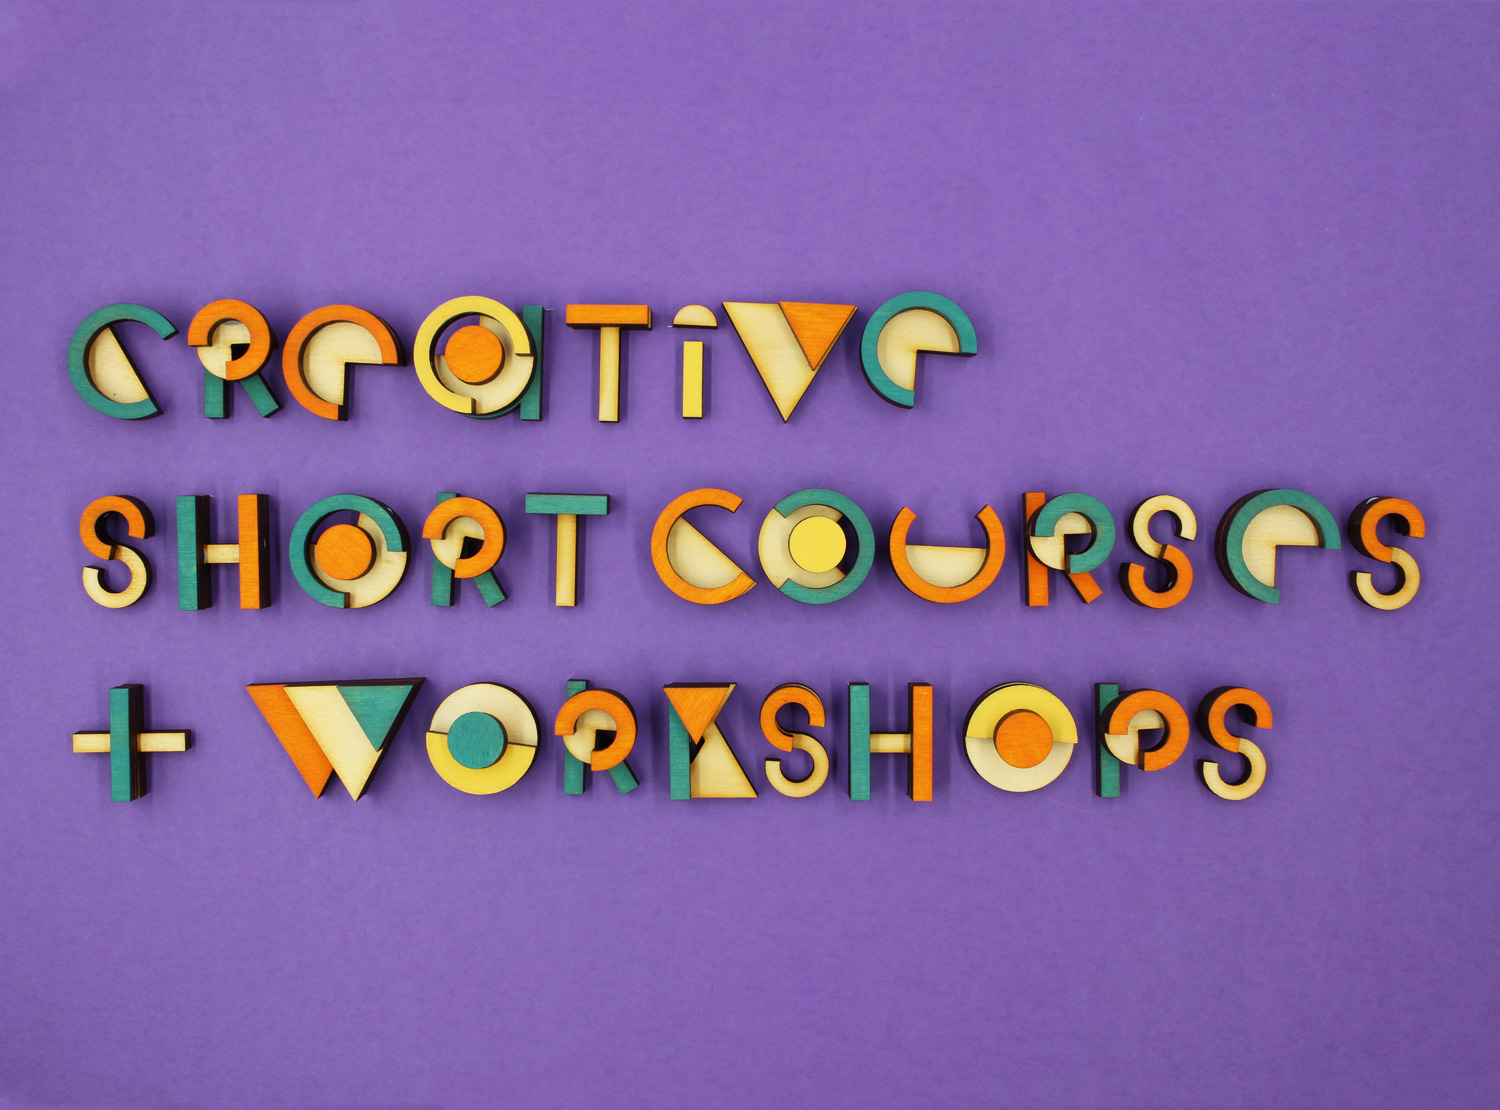 Creative Short Courses & Workshops Typography